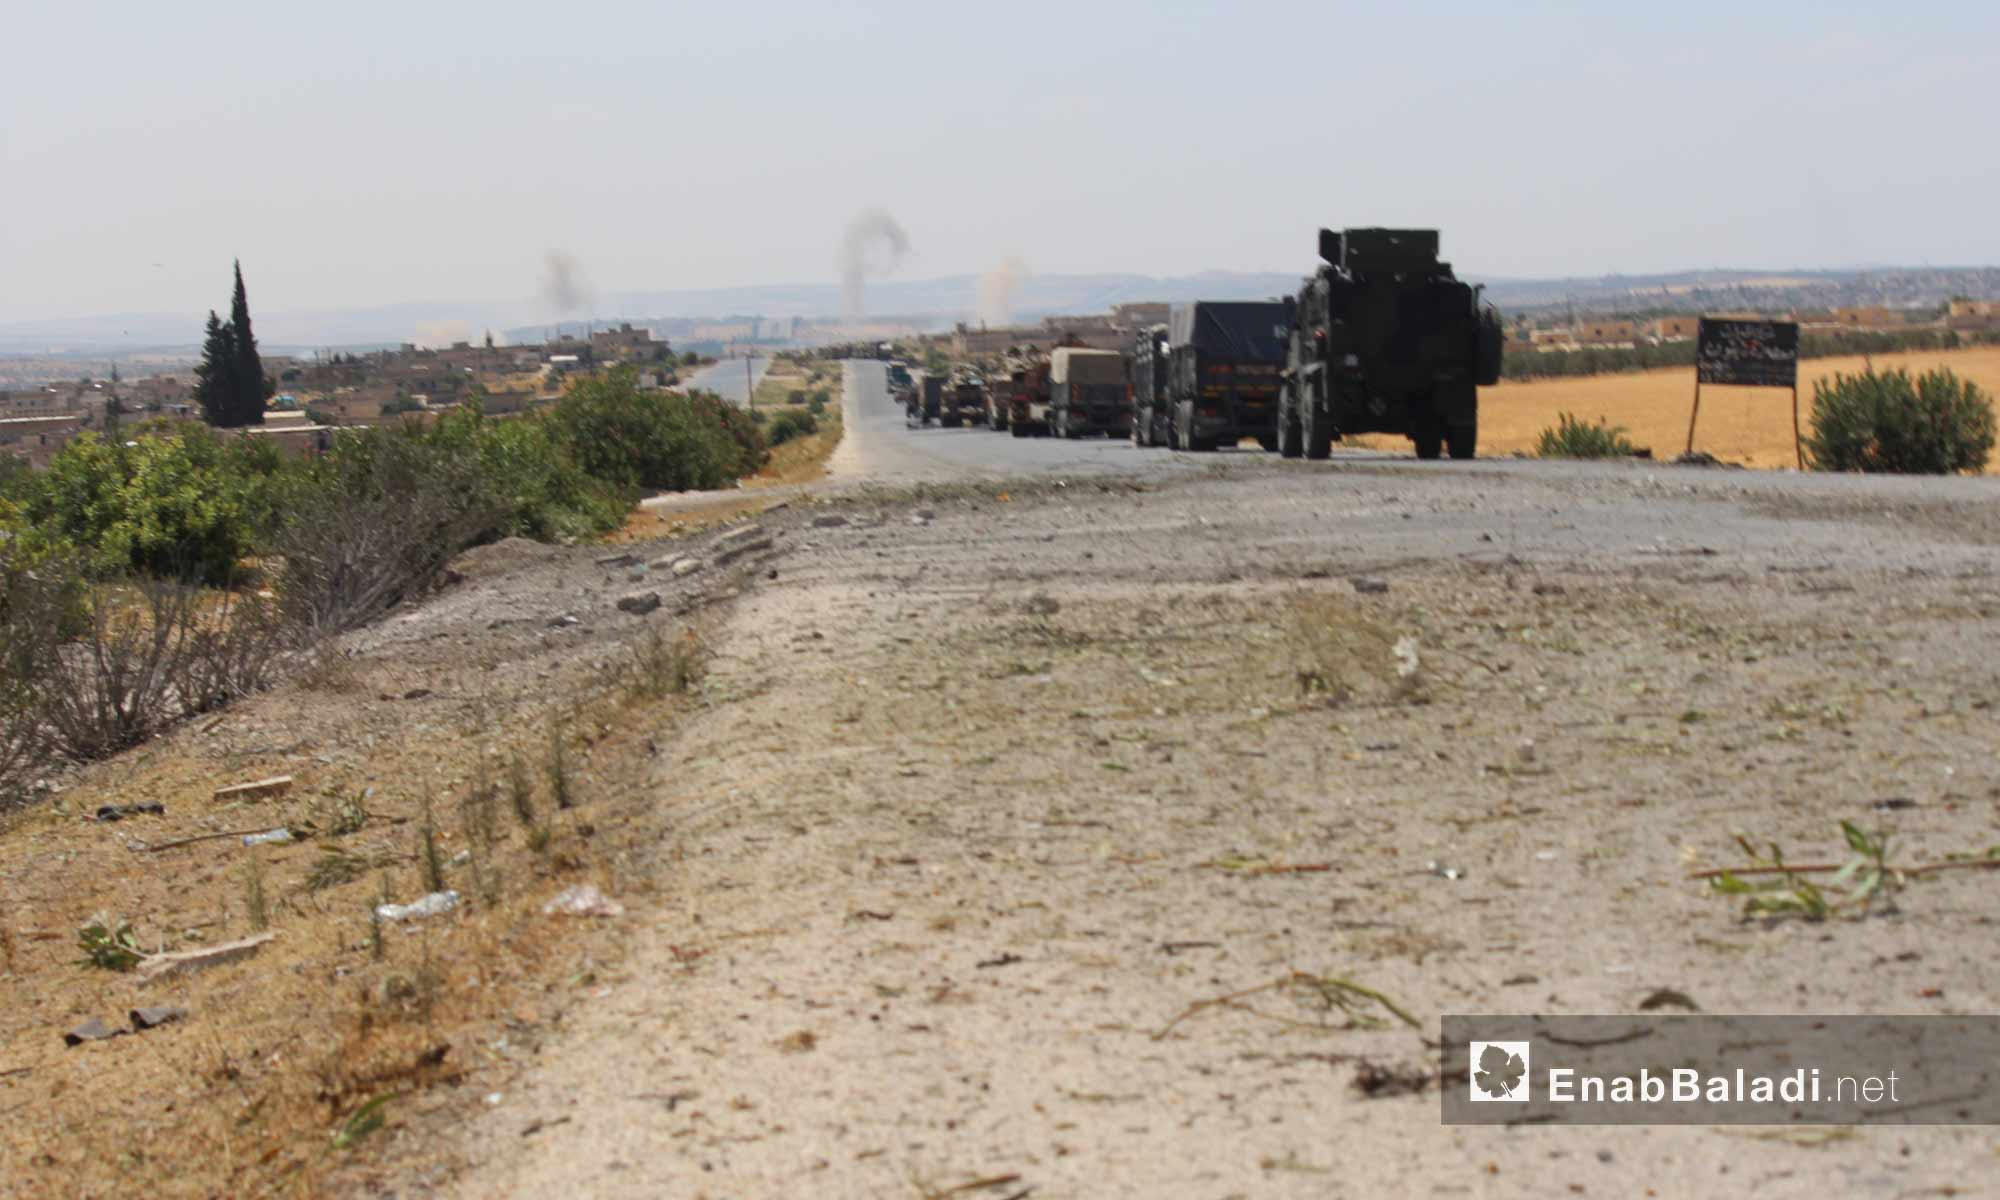 Turkish military convoy stuck near the Maer Hatat village, south of Ma`arat al-Nu`man in Idlib province, after being targeted by the Syrian regime's forces – August 19, 2019 (Enab Baladi)